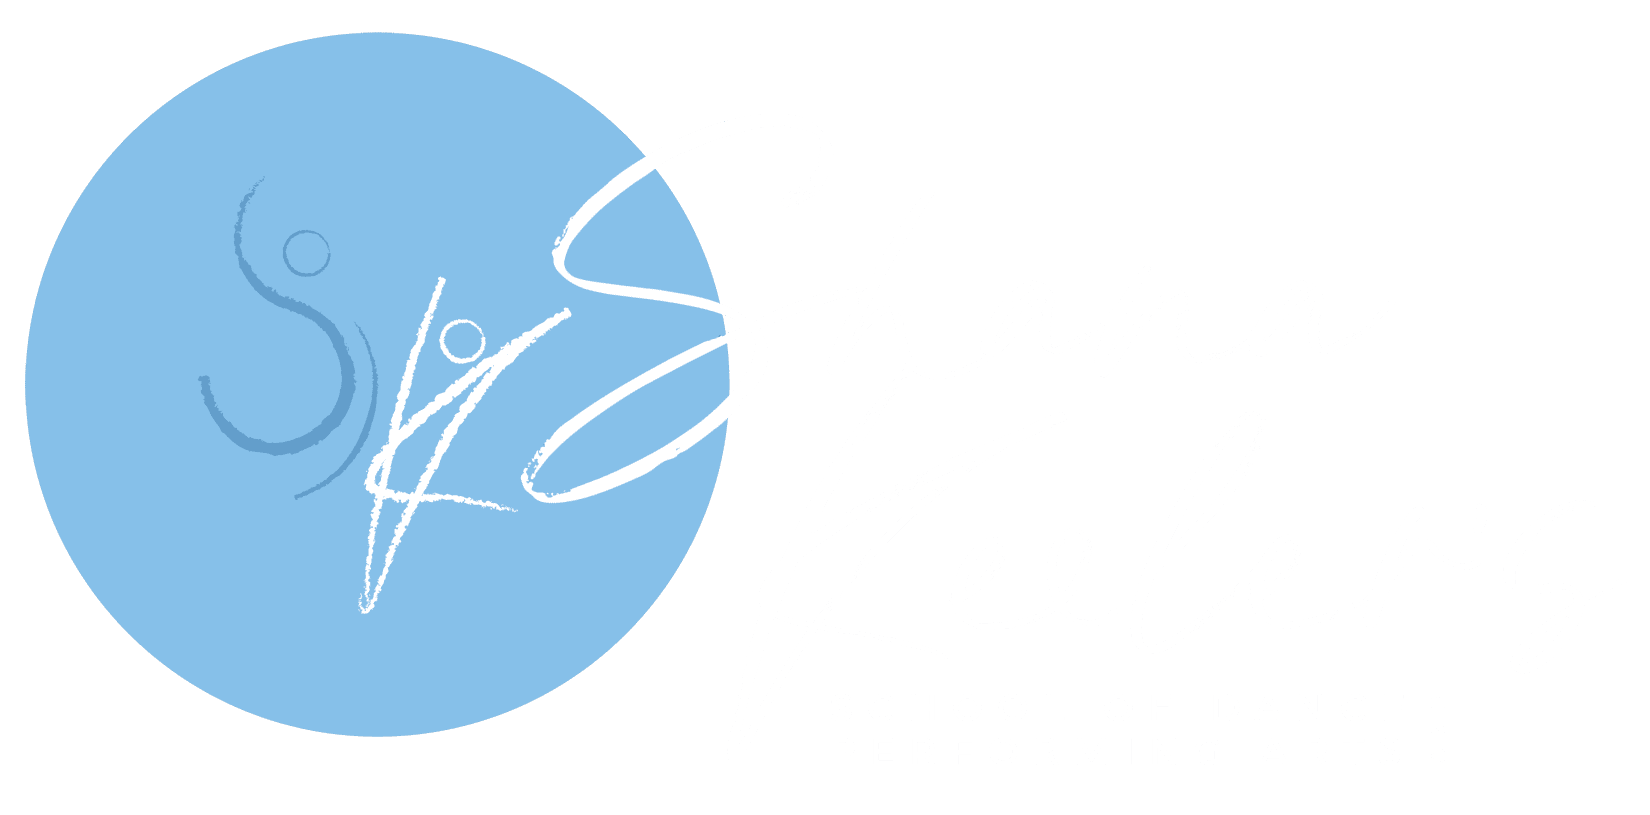 Shana Keeler's School of Dance